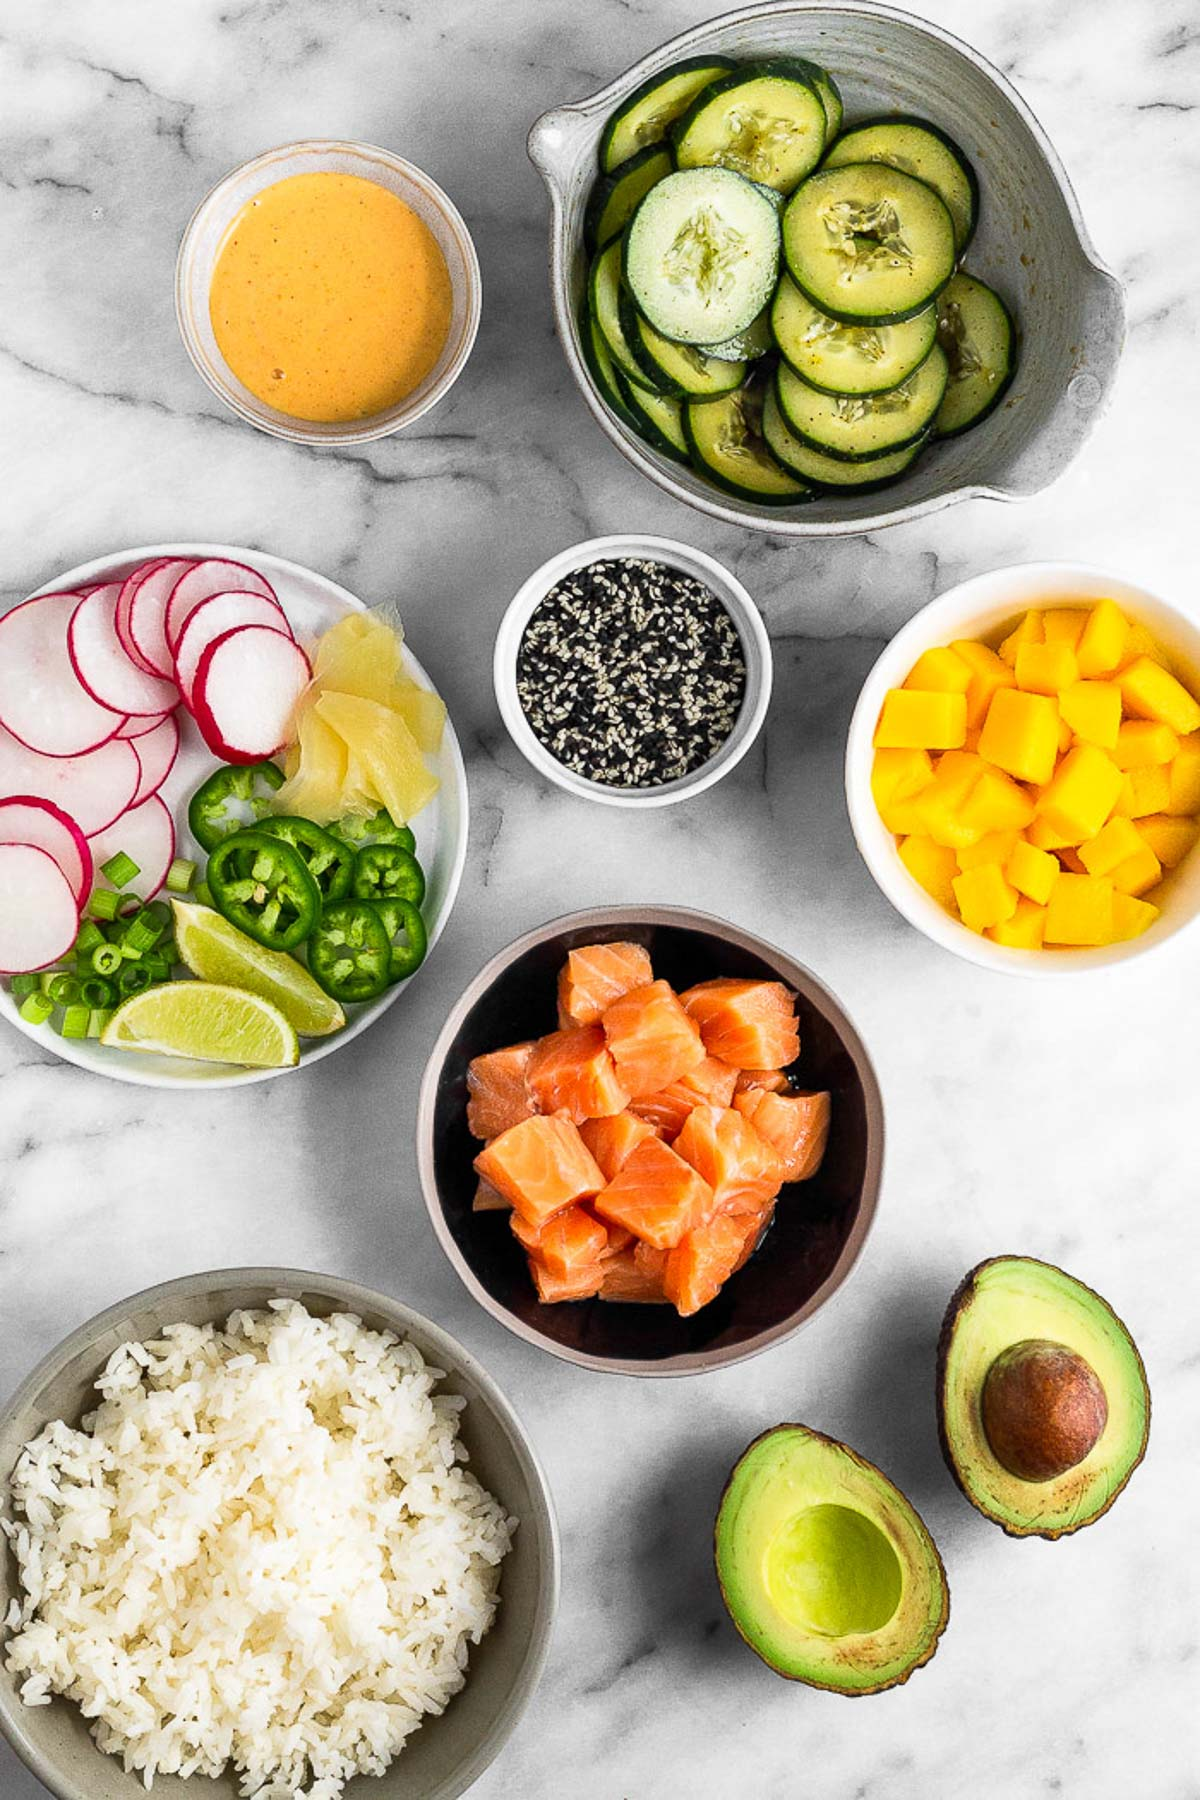 Counter filled with bowls of sliced cucumbers, cubed mangos, cubed salmon, white rice, avocado, spicy mayo, and sesame seeds. A plate is filled with radishes, jalapenos, pickled ginger, and lime wedges.